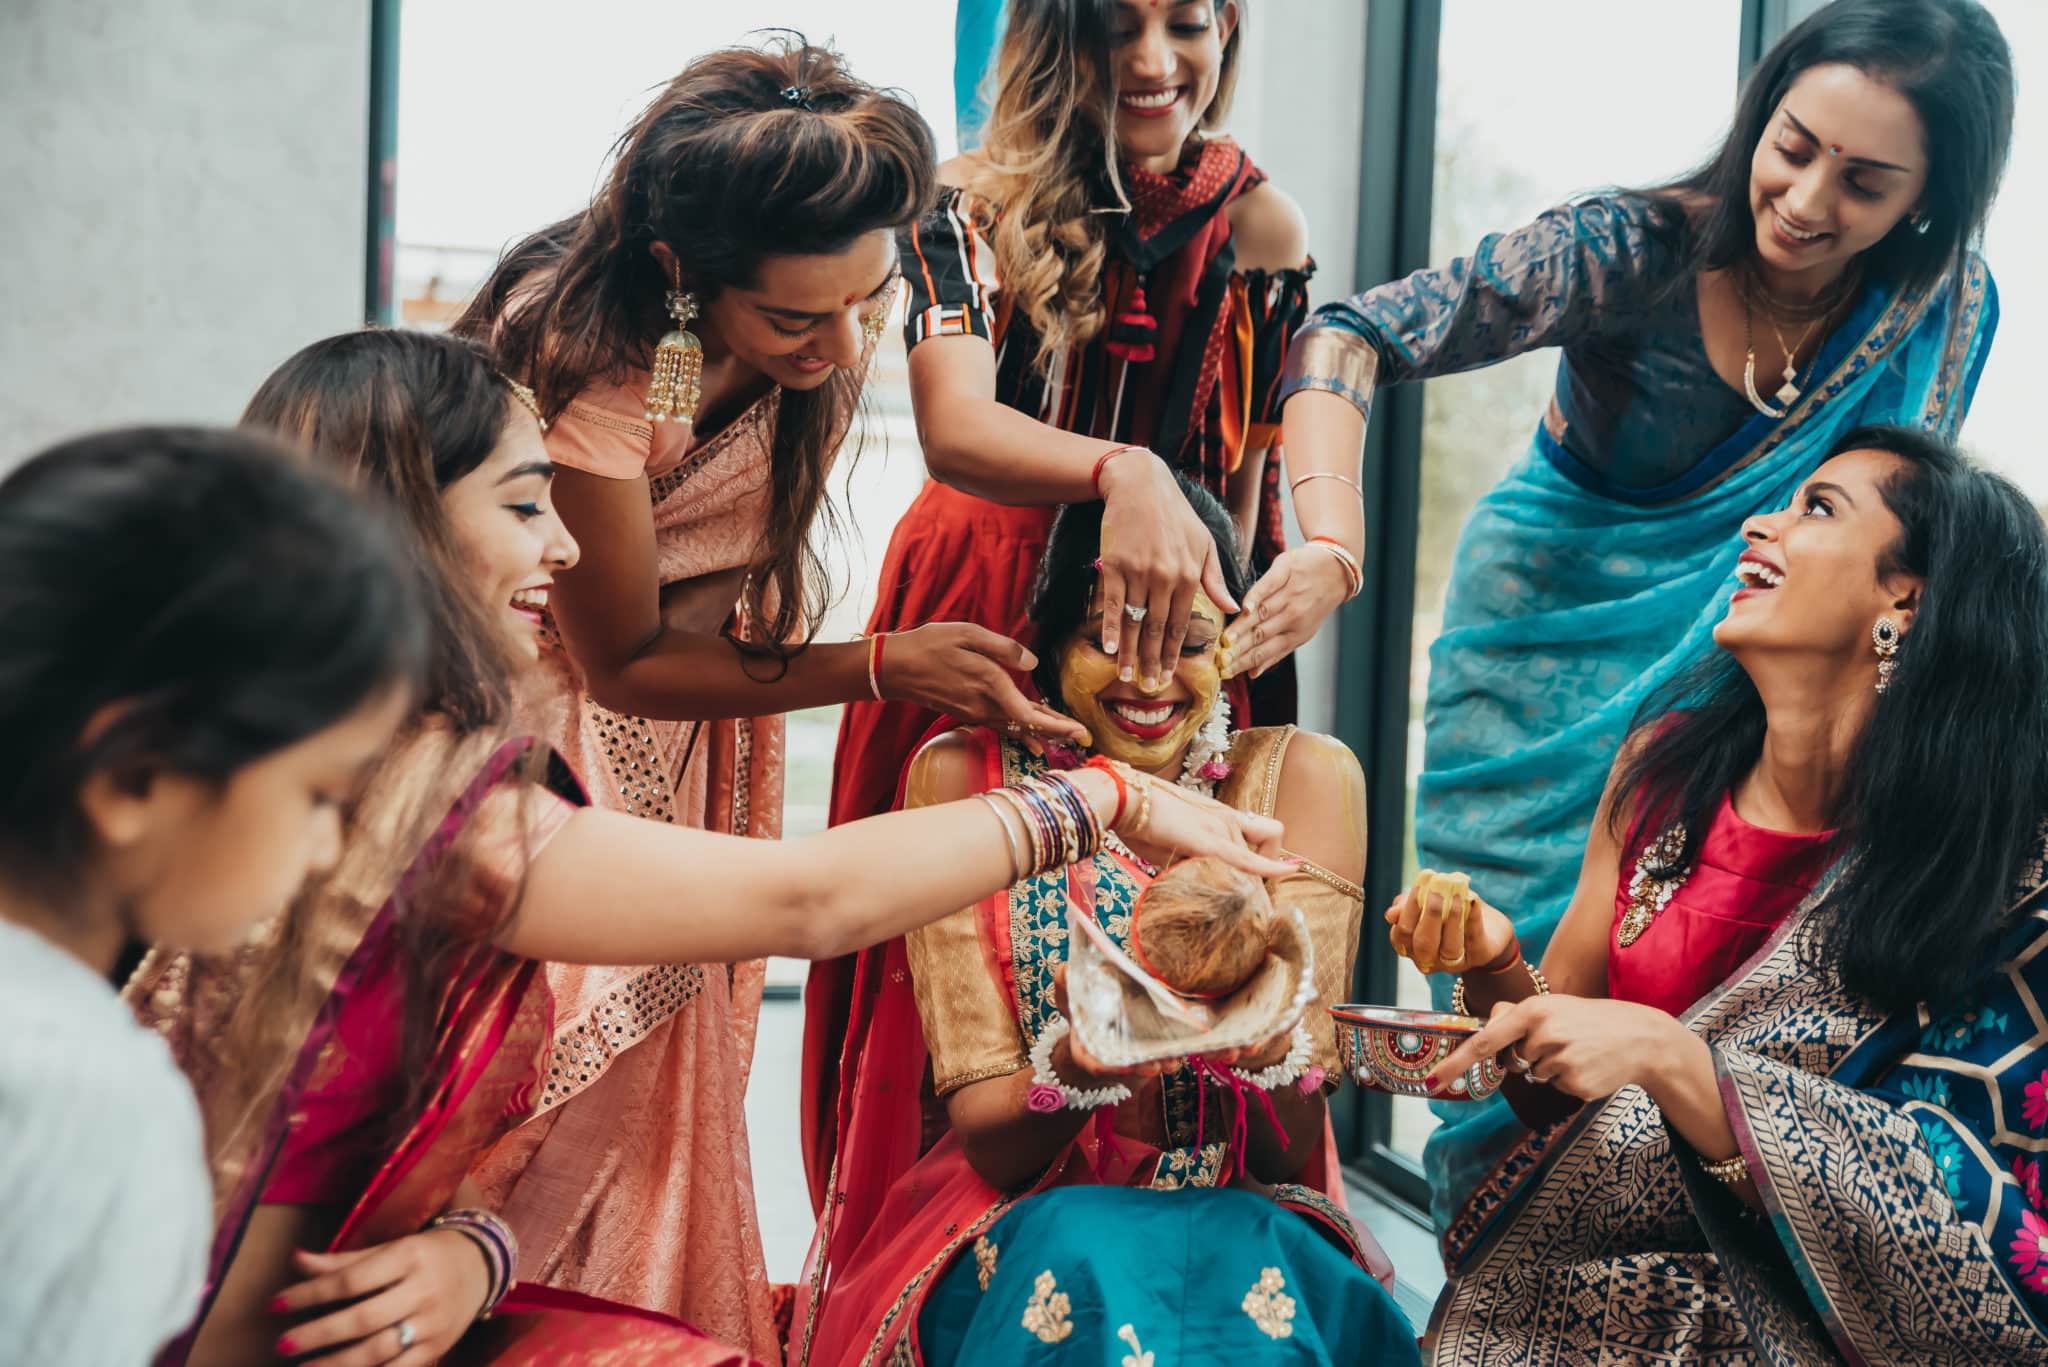 Mehndi ceremony in an Indian wedding ceremony, Barnet, Potters Bar London